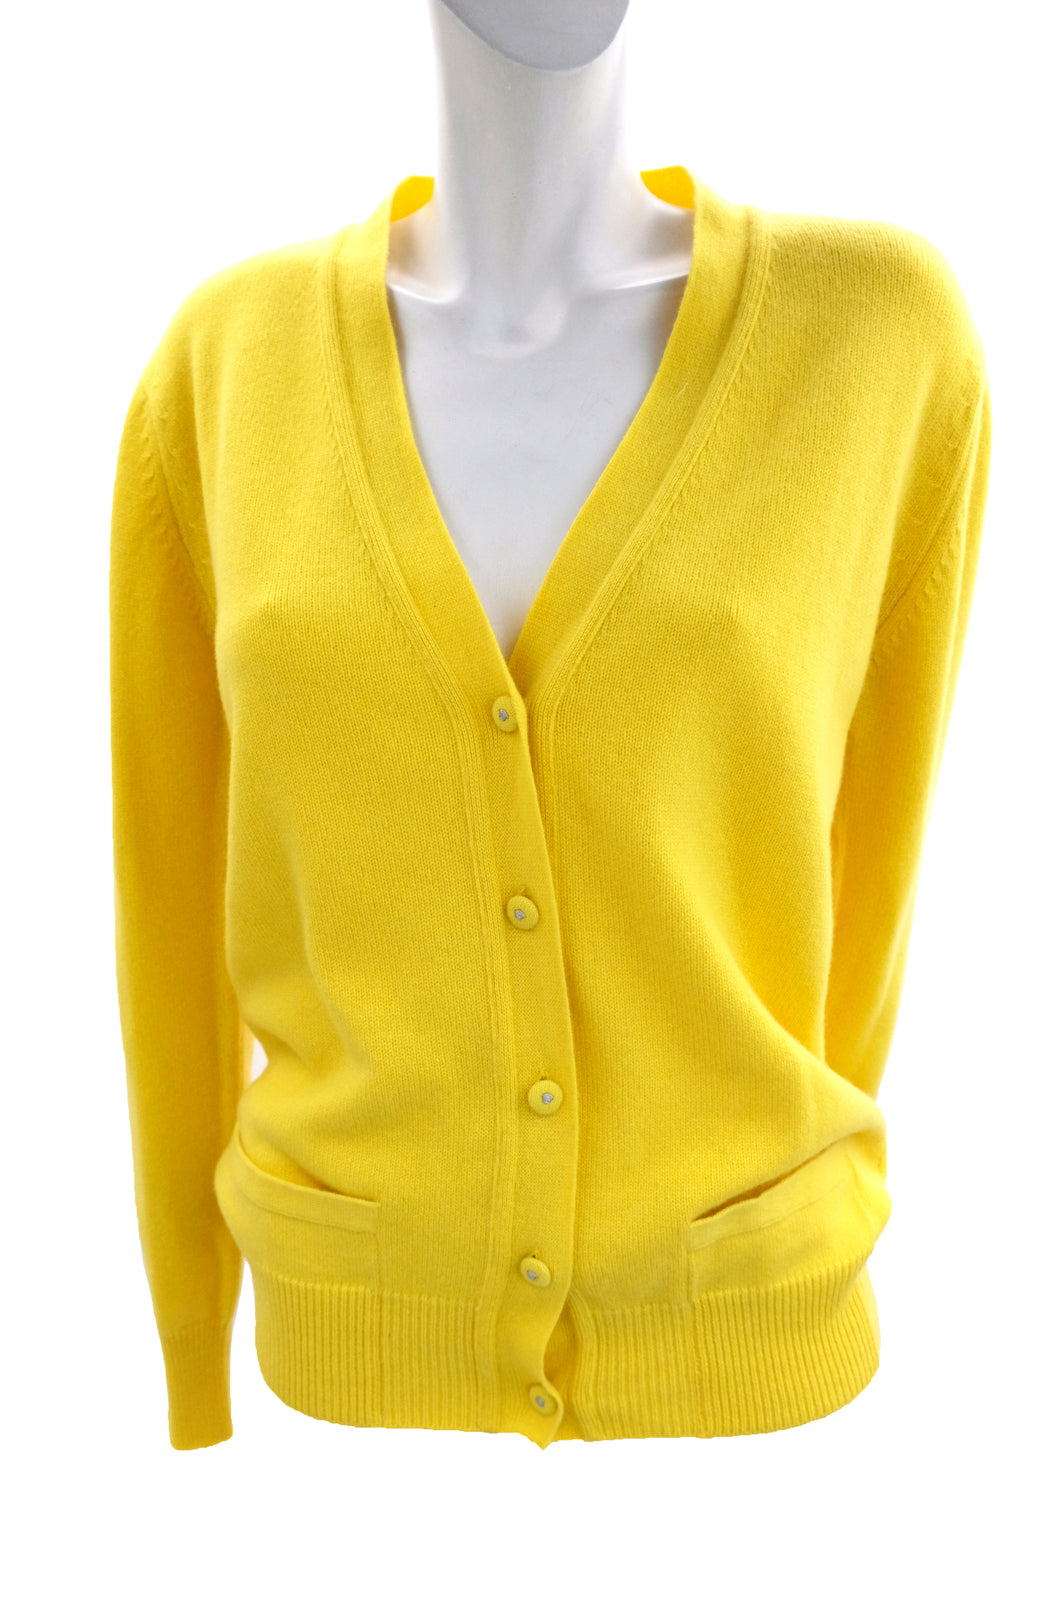 Versace Cardigan in Canary Yellow Wool, UK10-12